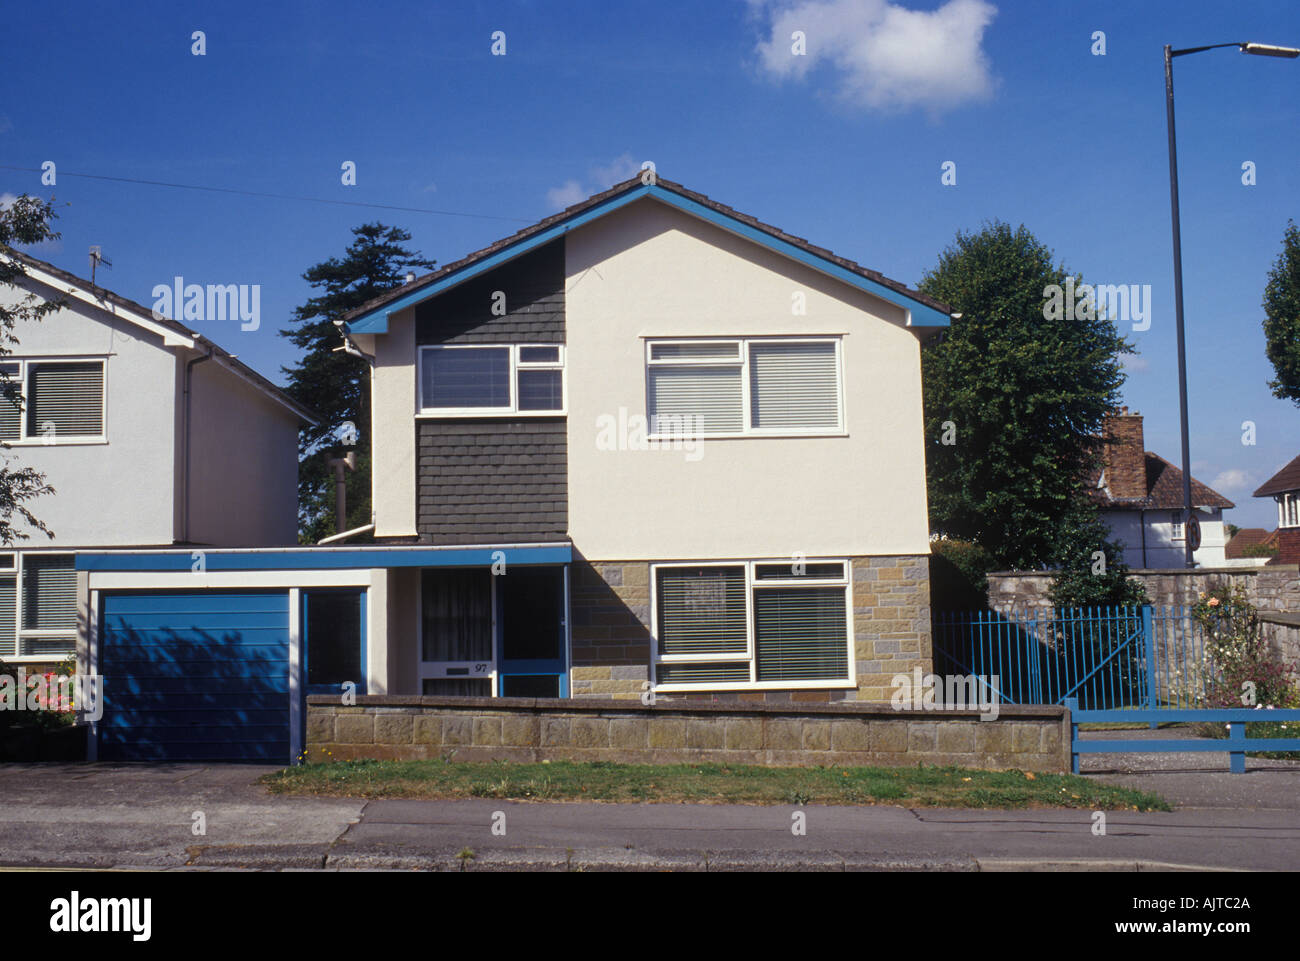 1950S House Amazing 1950S House Stock Photos & 1950S House Stock Images  Alamy Inspiration Design